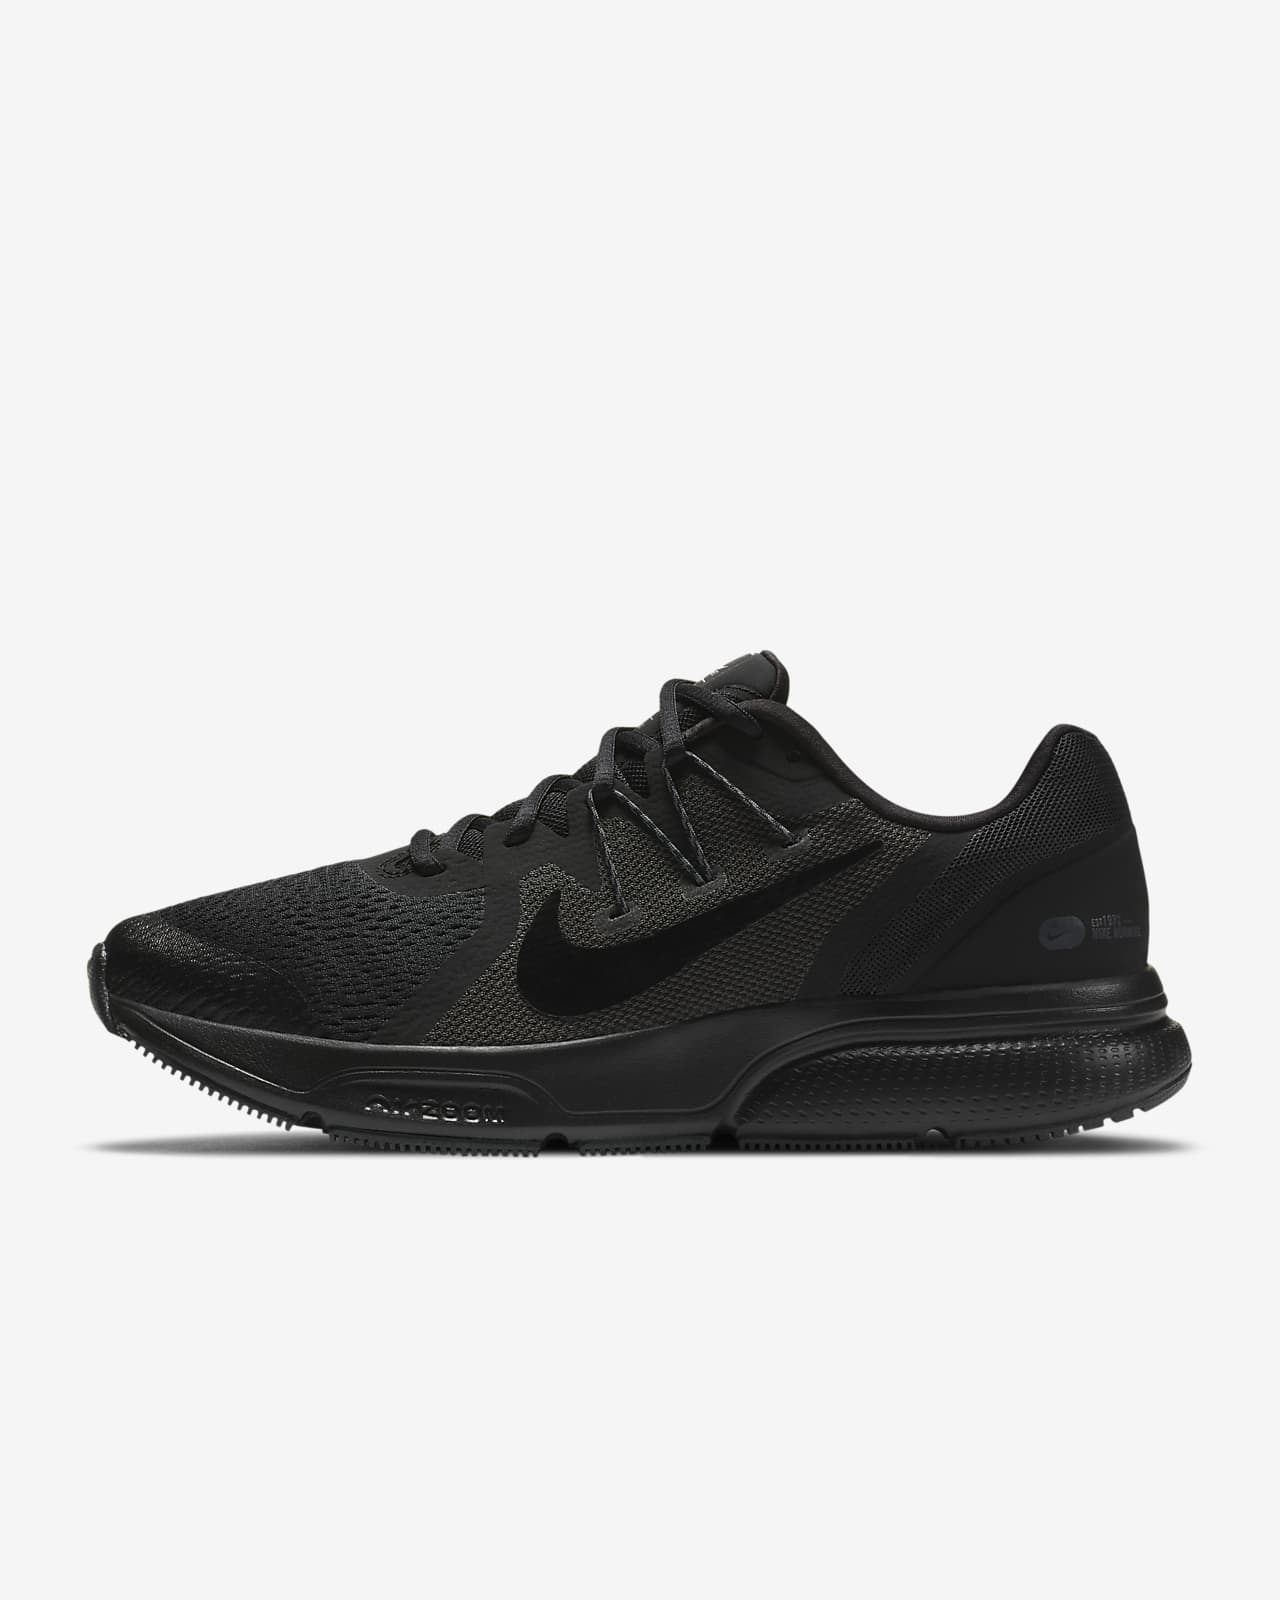 Chaussure de running Nike Zoom Span 3 pour Homme